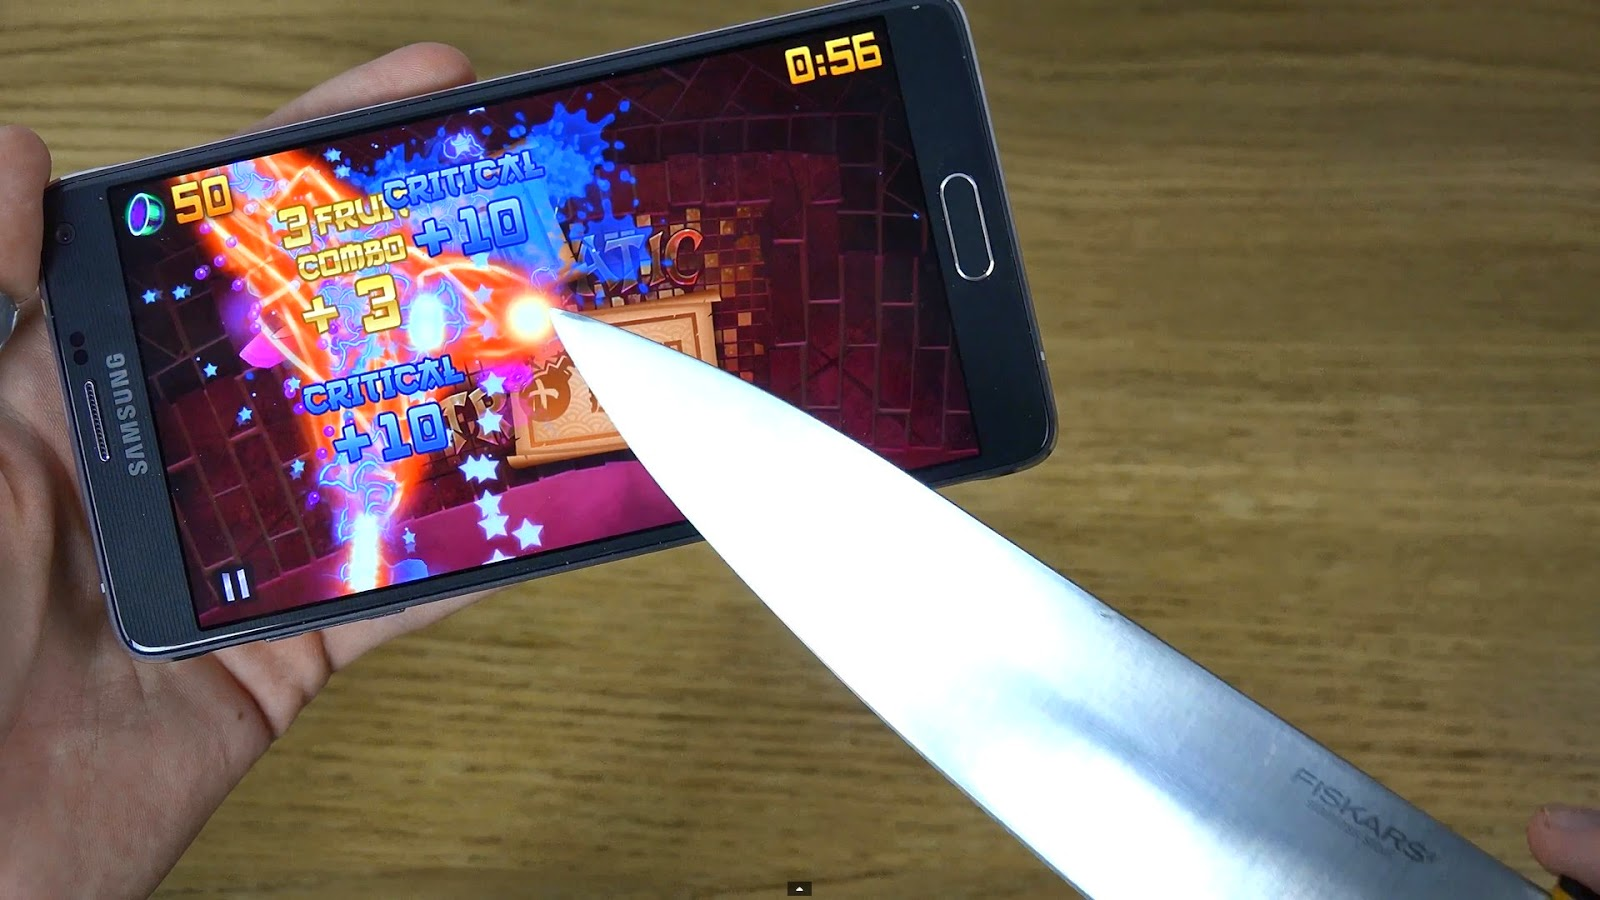 Samsung Galaxy Note 4 could be operated with a knife